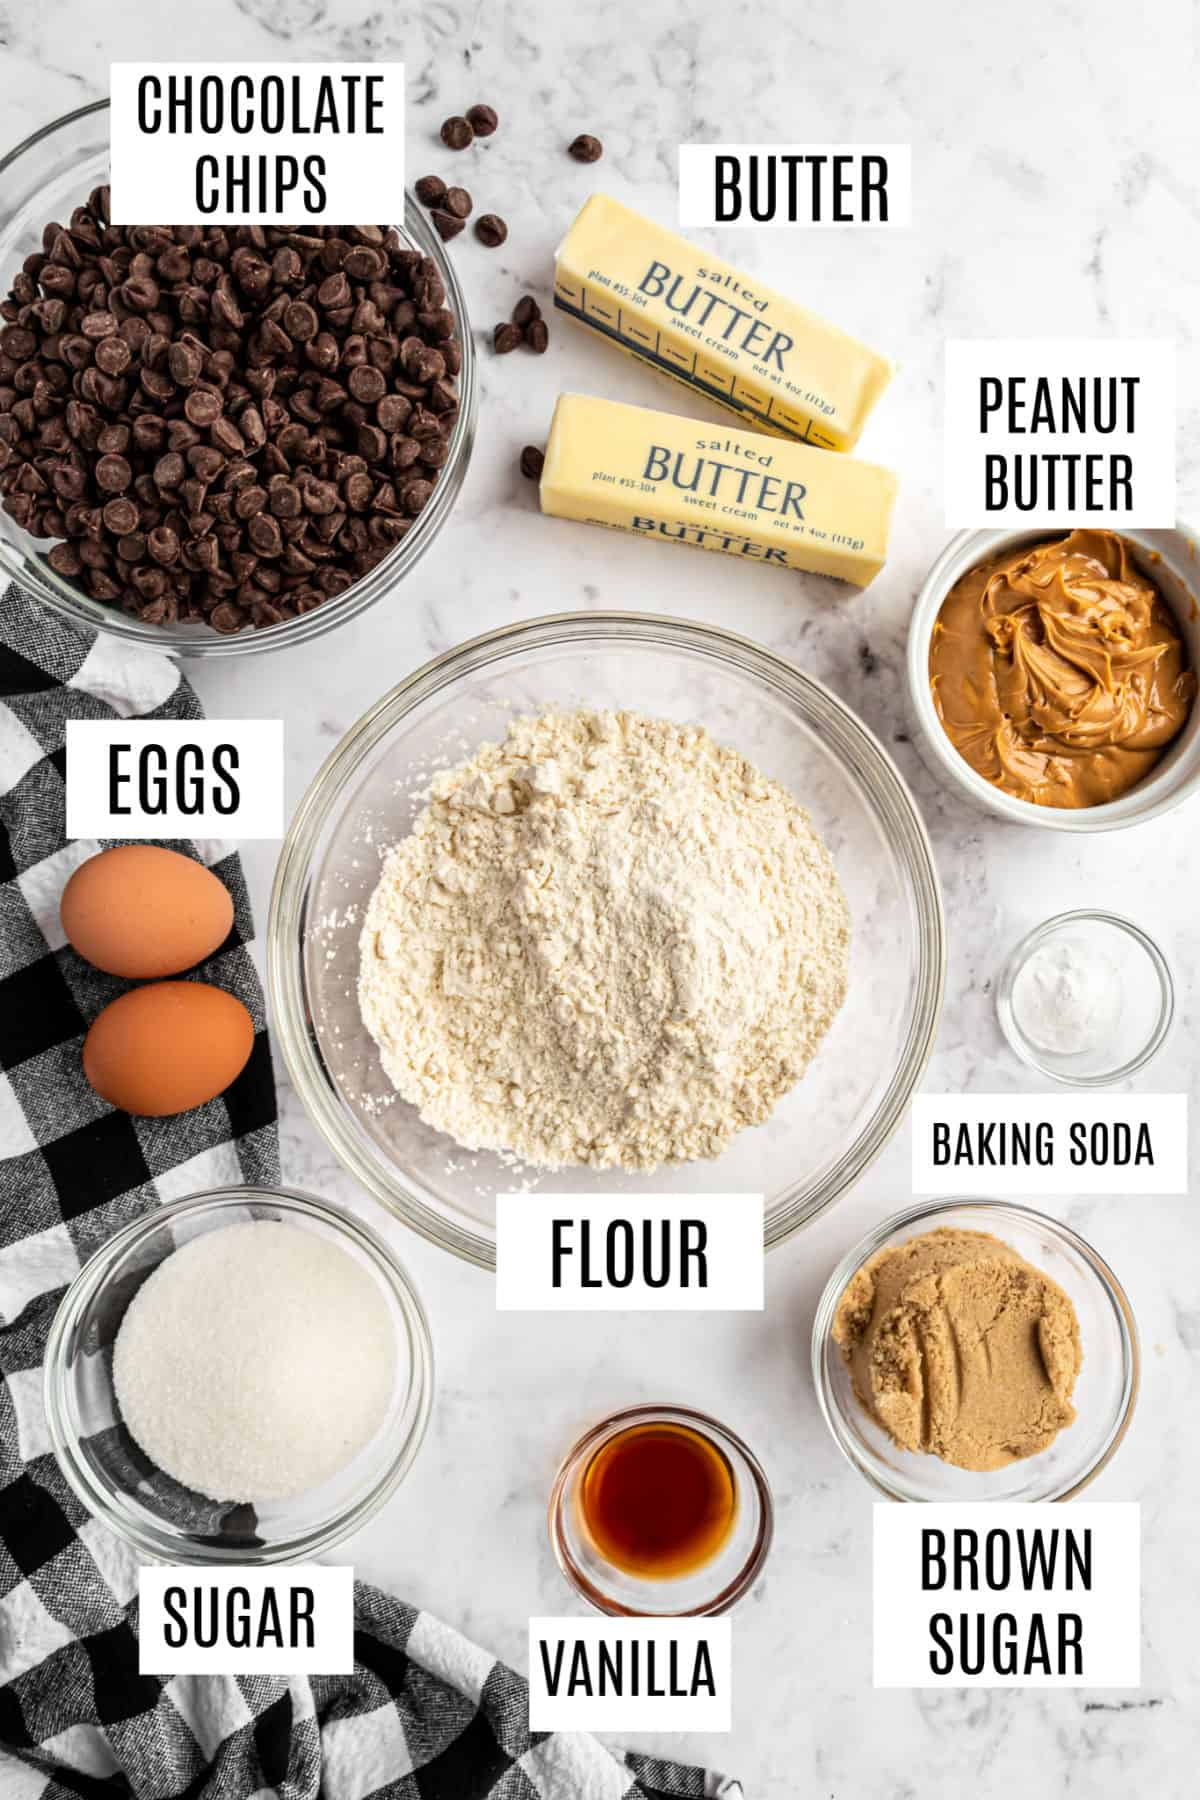 Ingredients needed to make peanut butter swirled chocolate chip cookie bars.